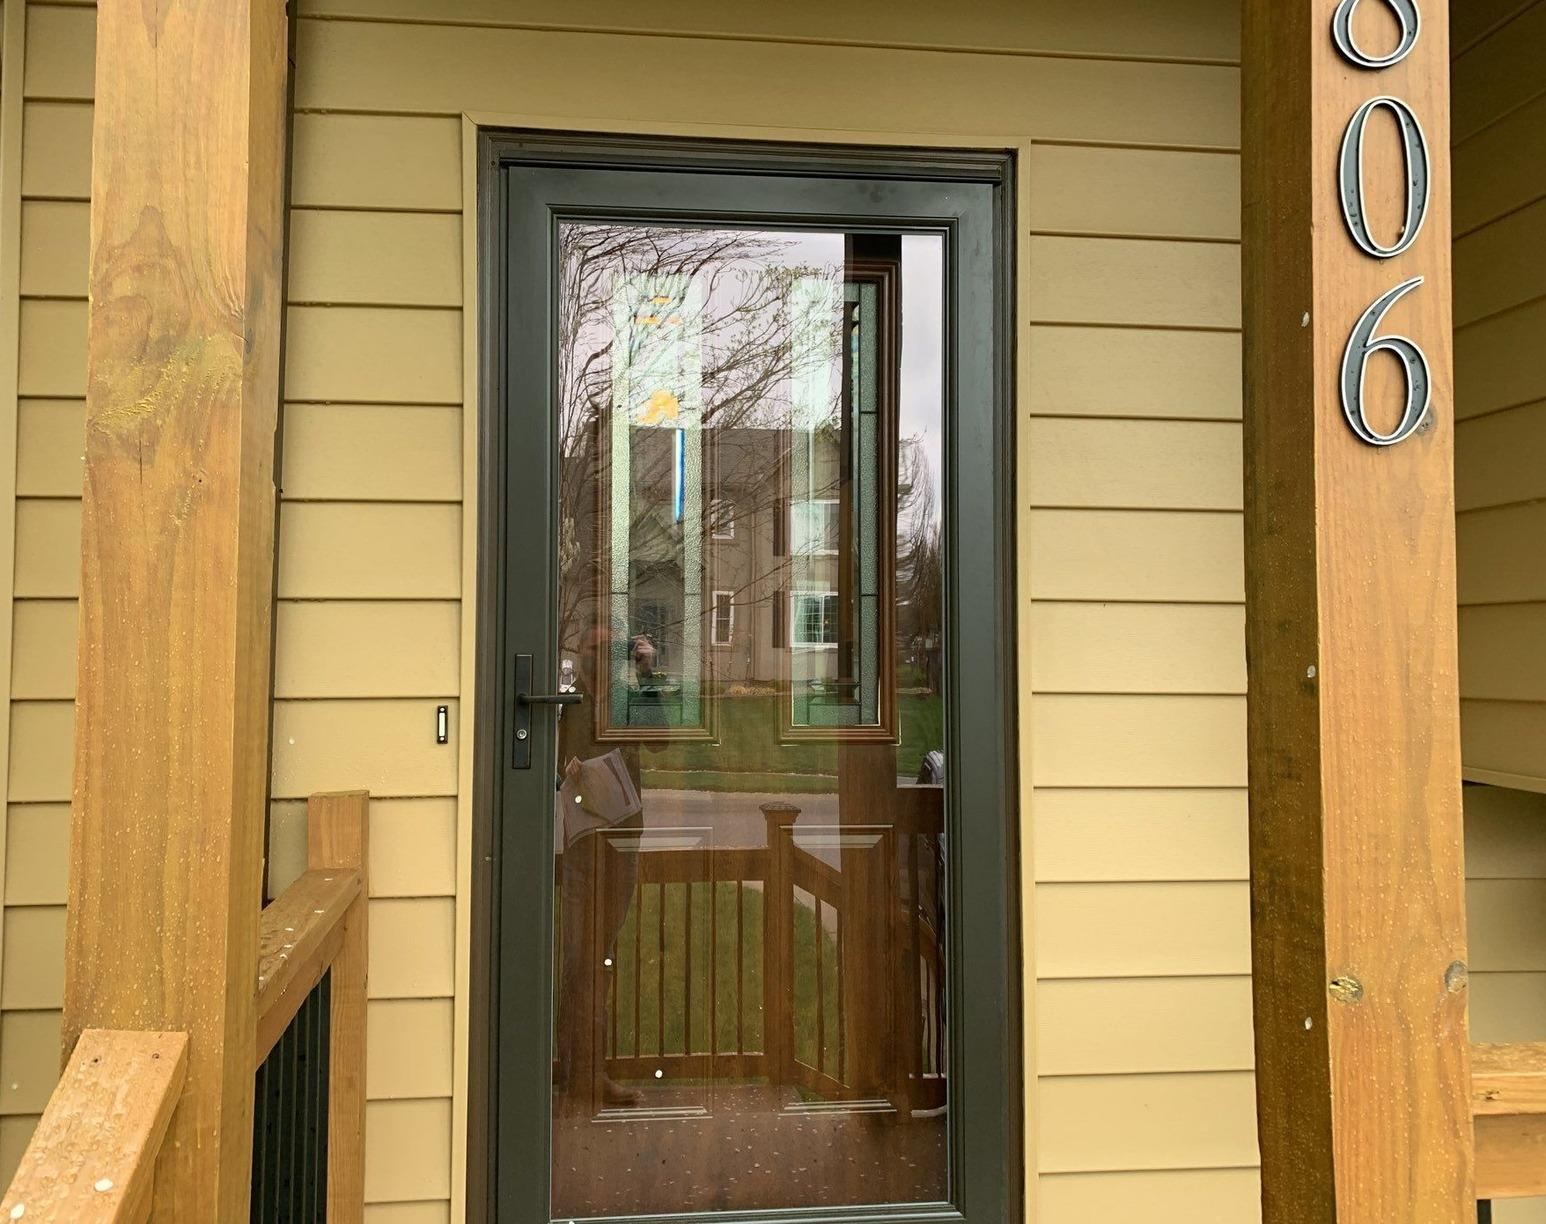 Entry Door and Storm Door Replaced at a Home in Shawnee, KS - After Photo